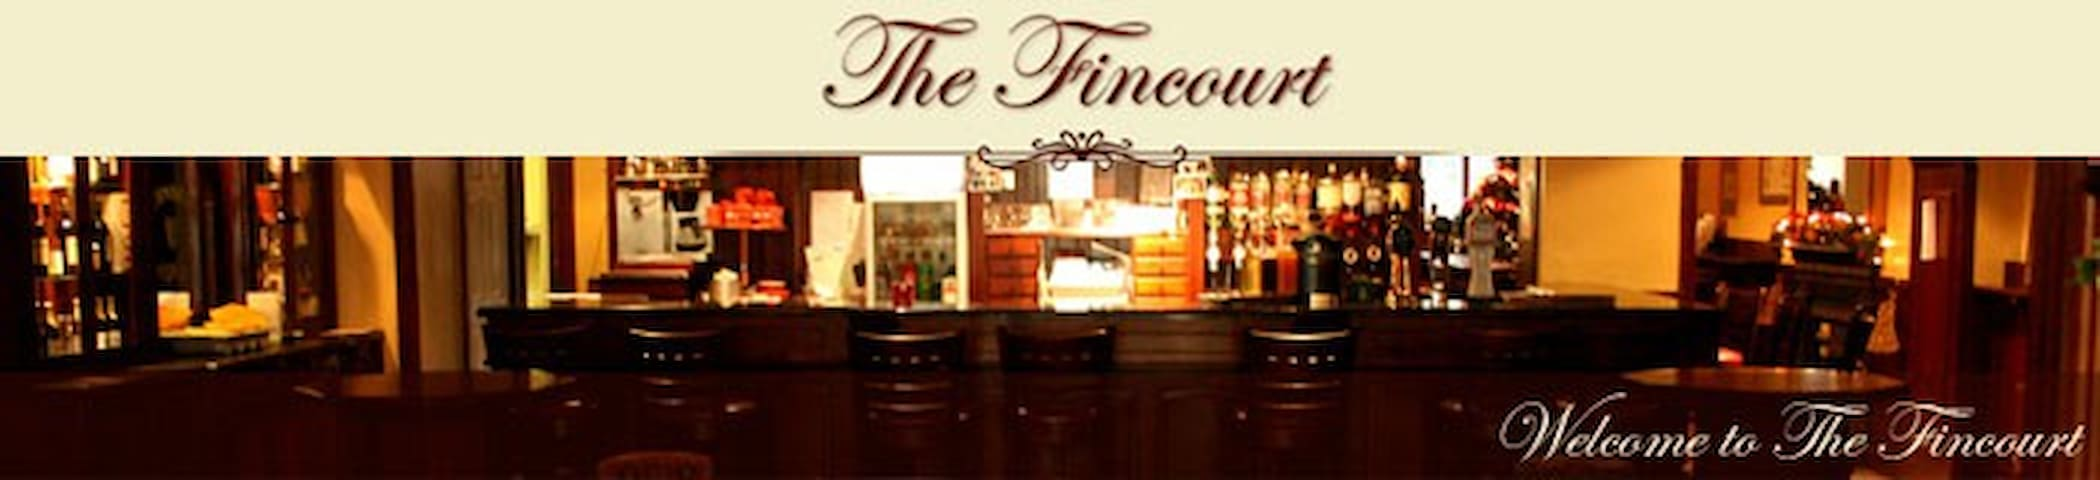 The Fincourt Bed&Breakfast